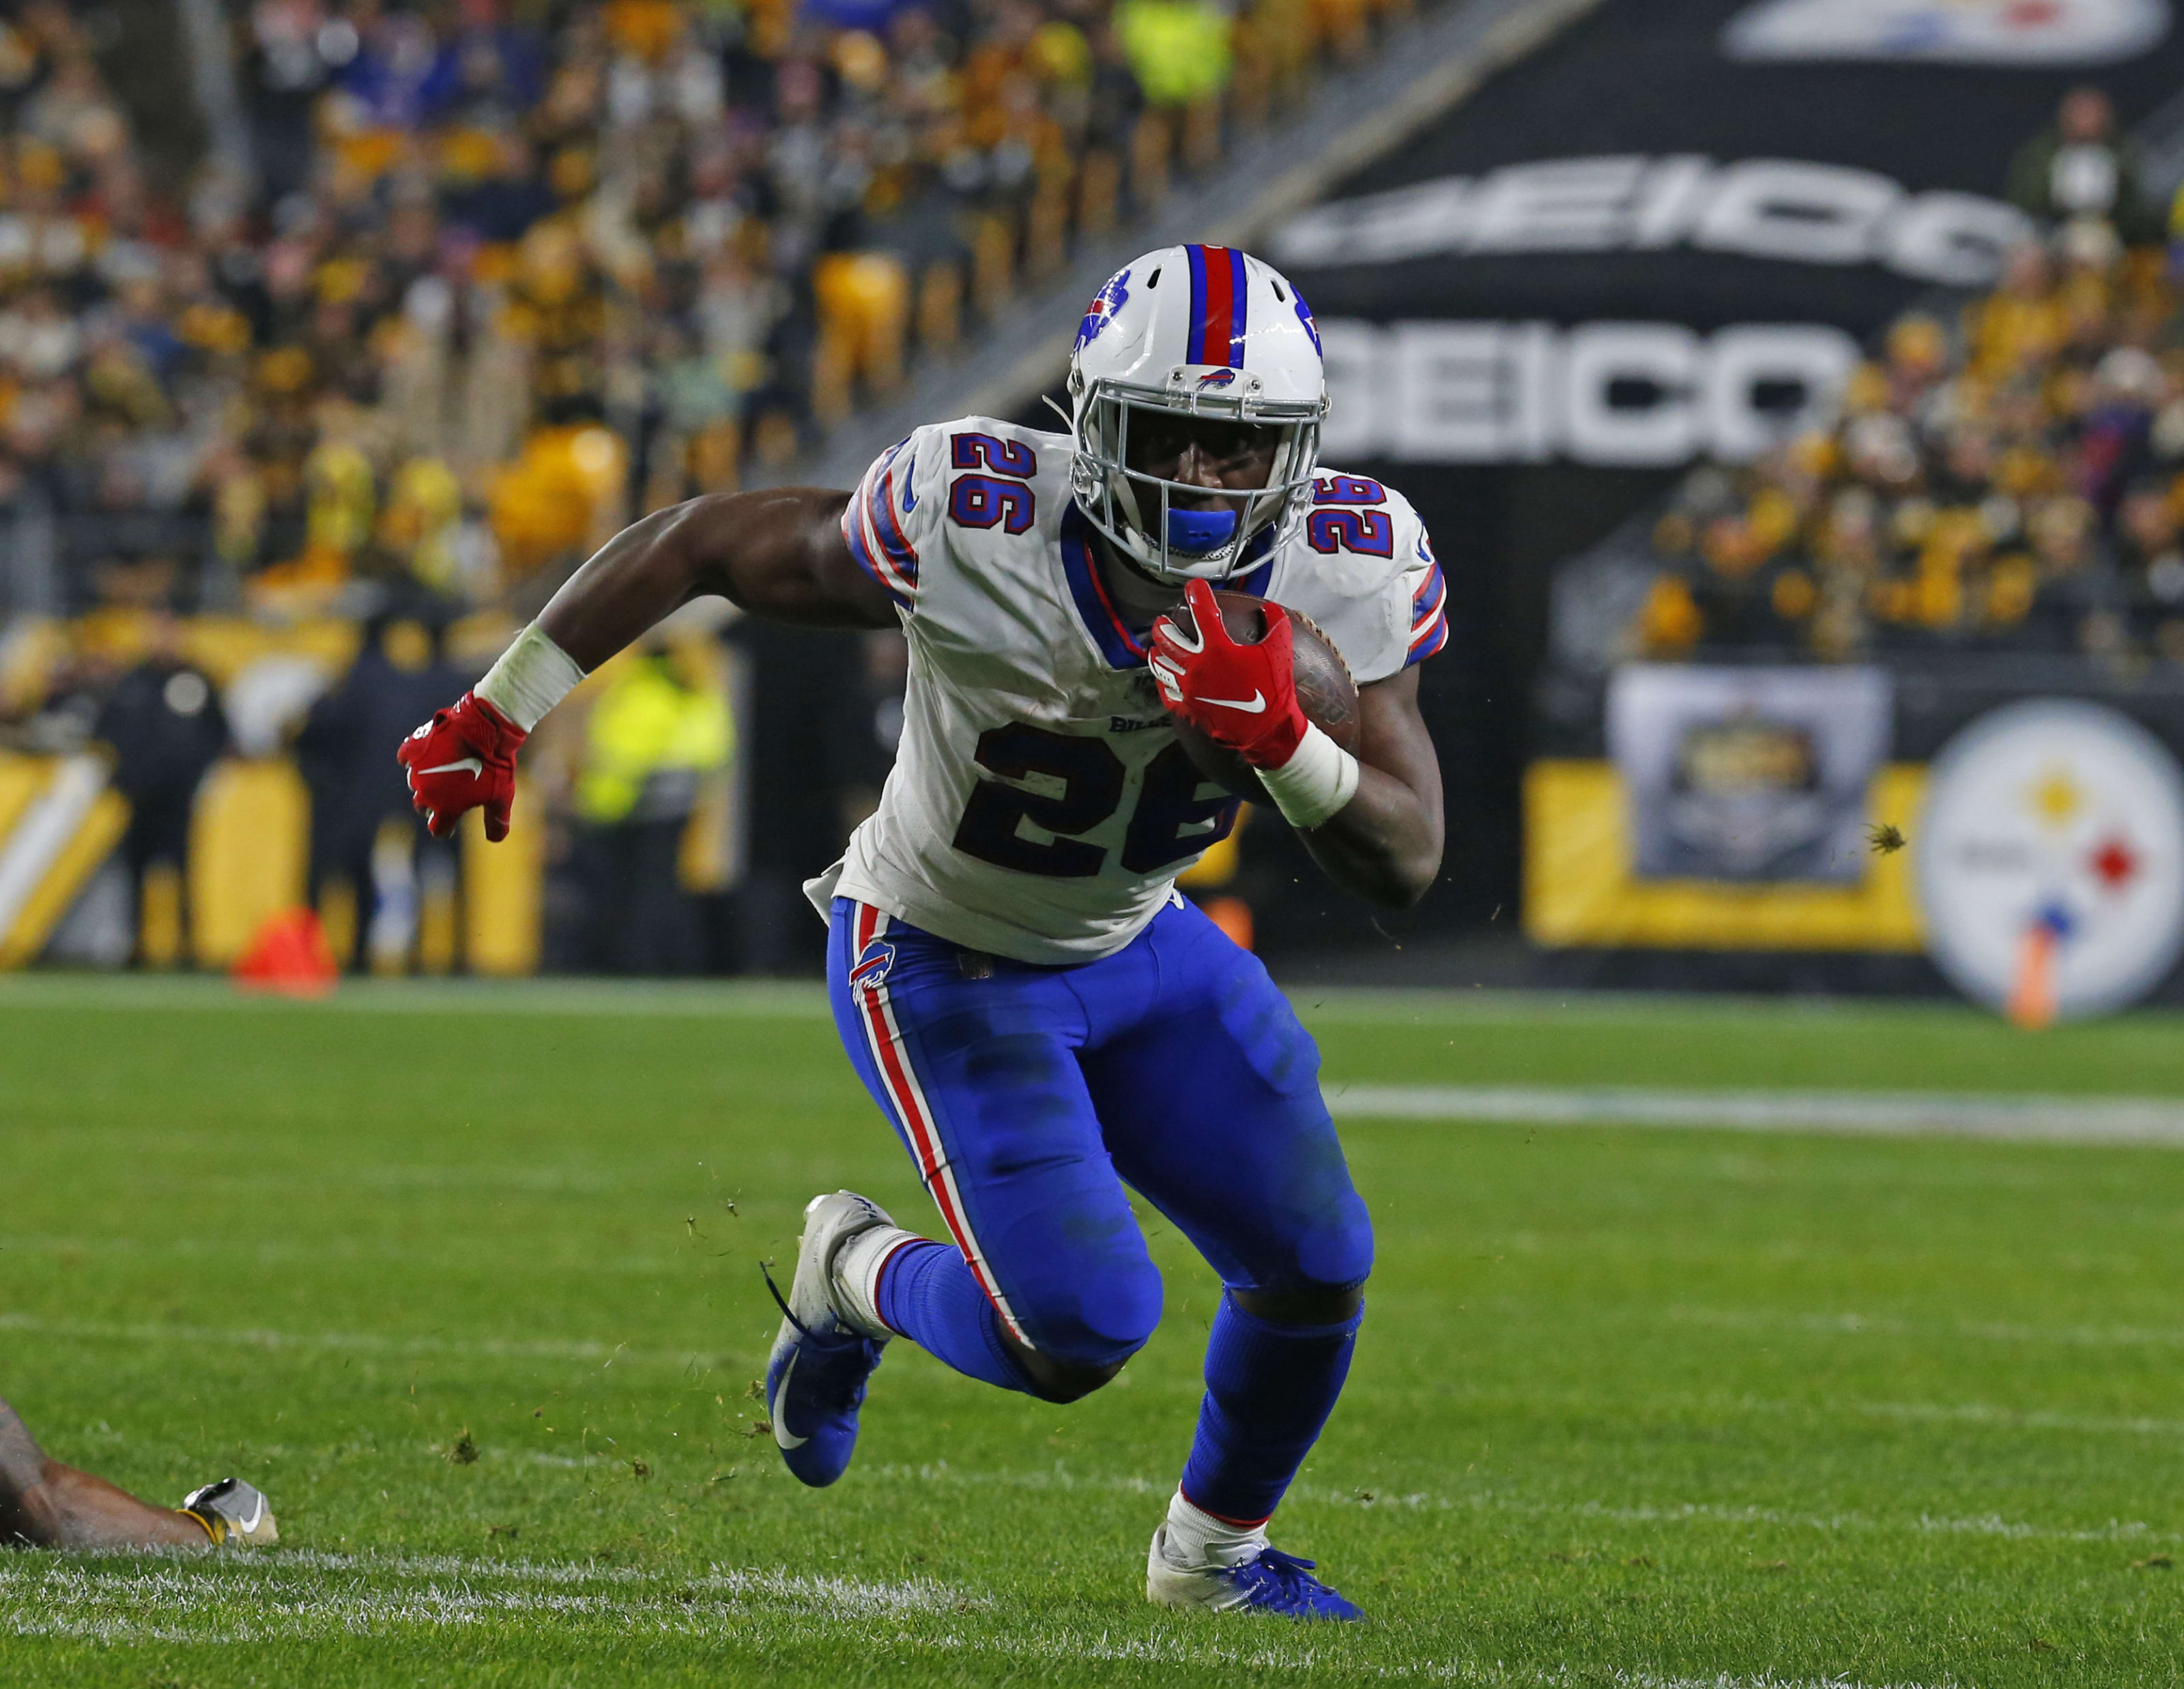 Buffalo Bills: Why Devin Singletary can be even better in 2020